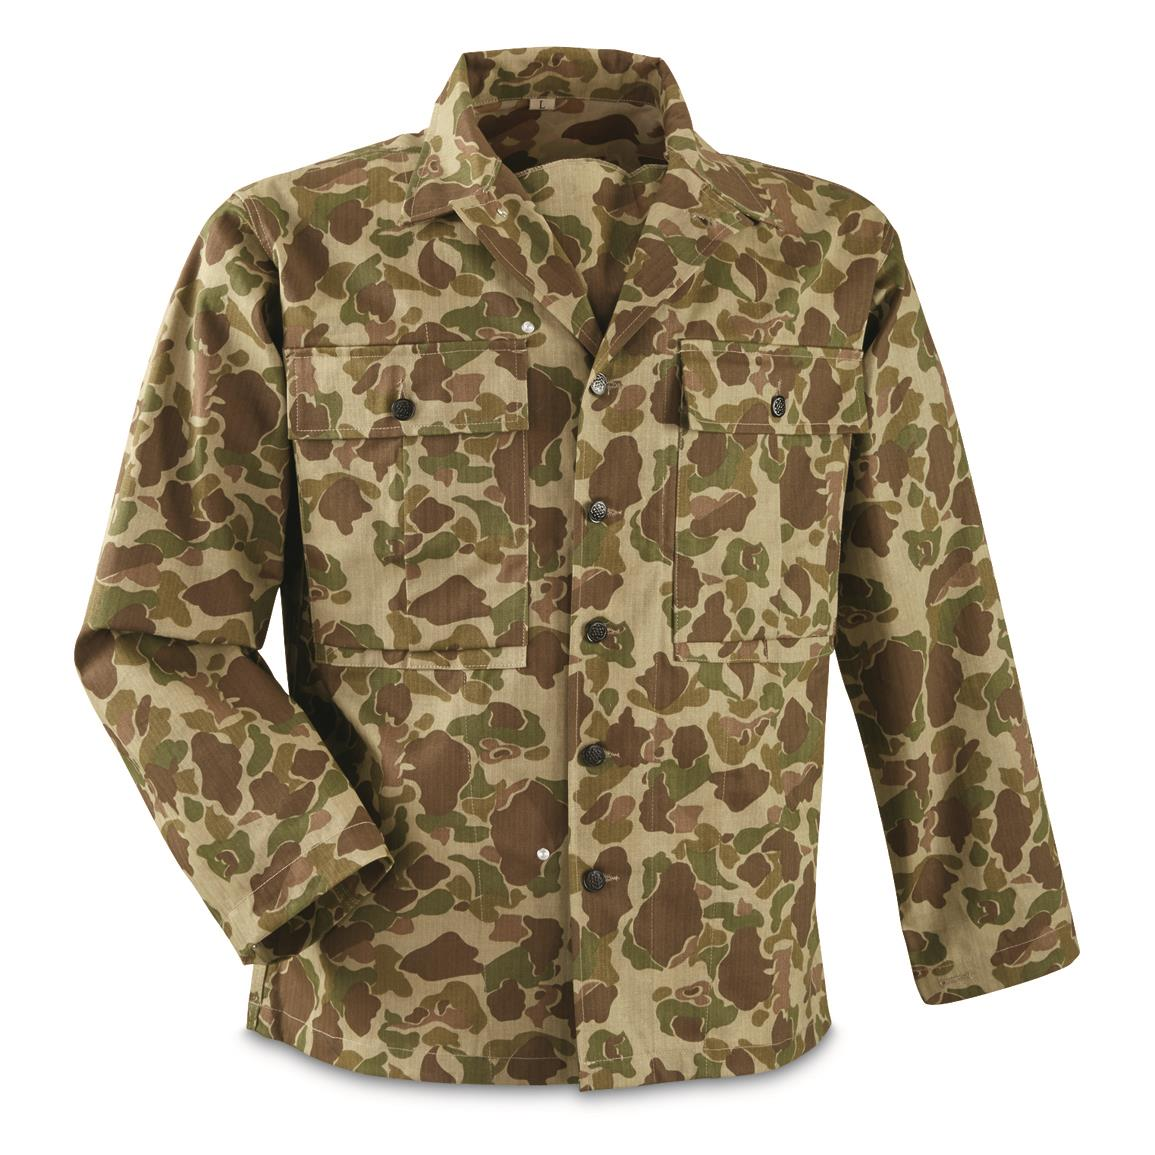 Repro U.S. Military WWII M42 HBT Shirt, Pacific Camo